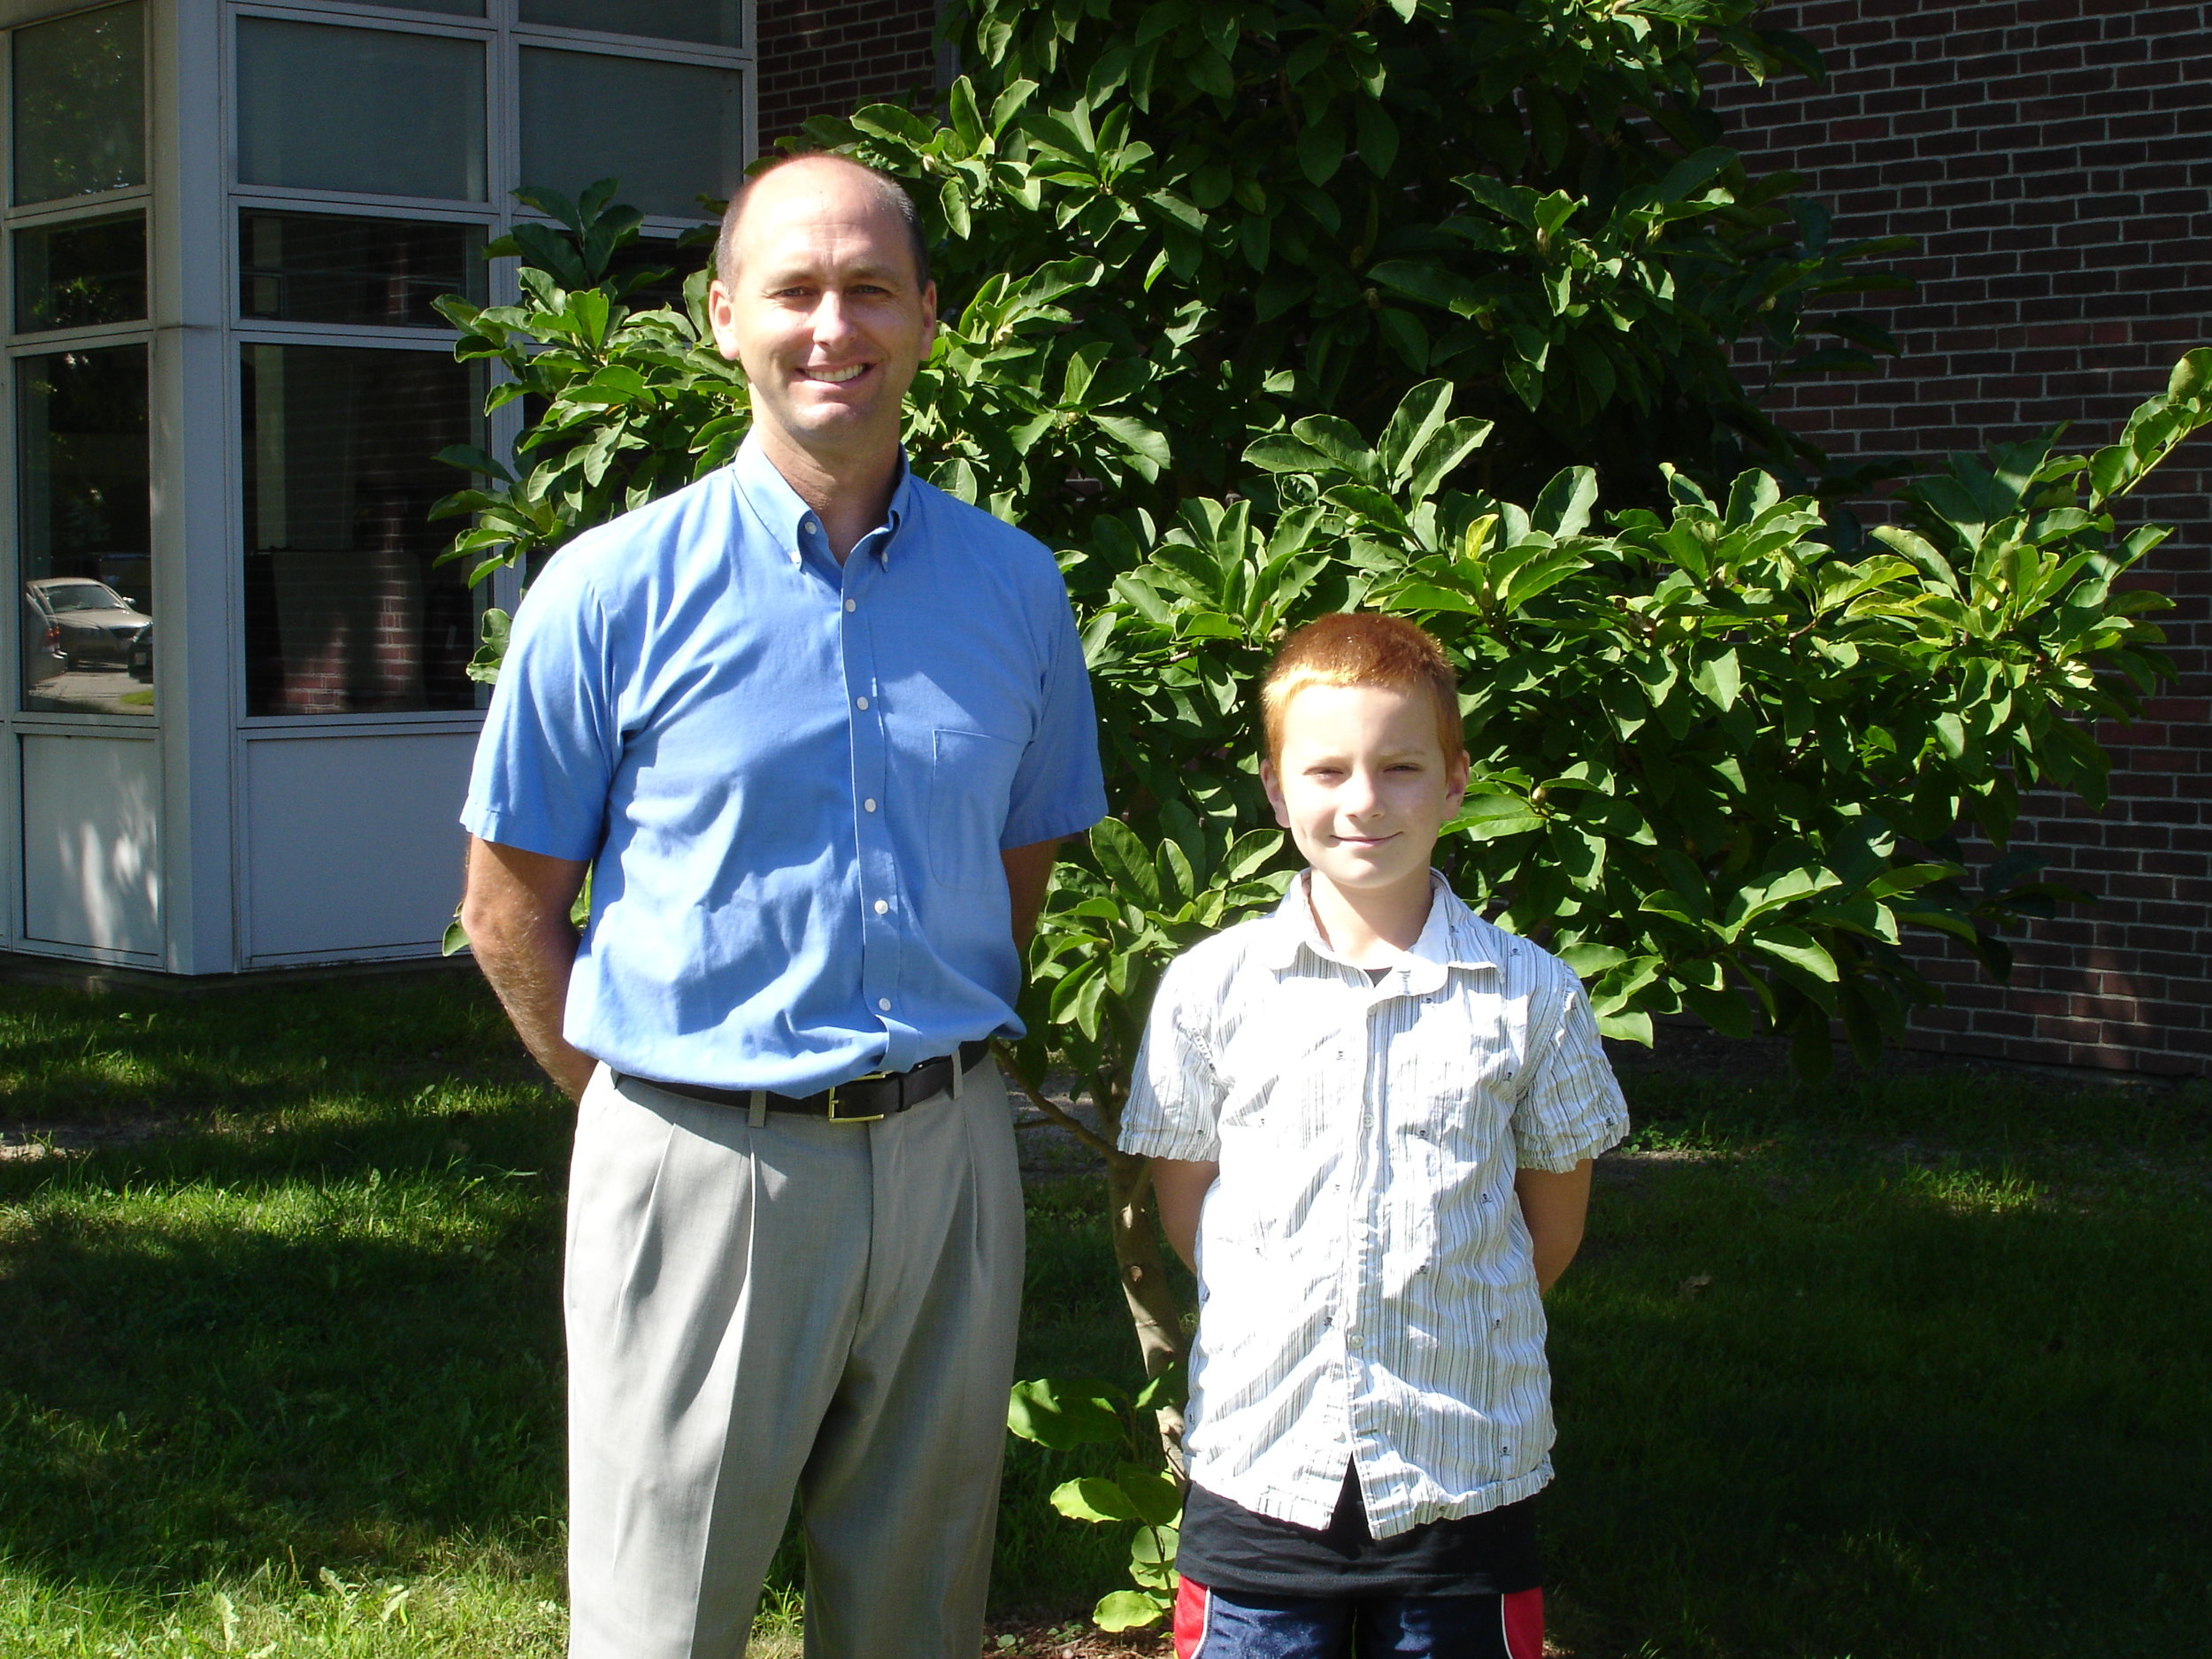 Principal Ackerman and Student Rob Ackerman on their first day of school as principal and as a fifth grader!